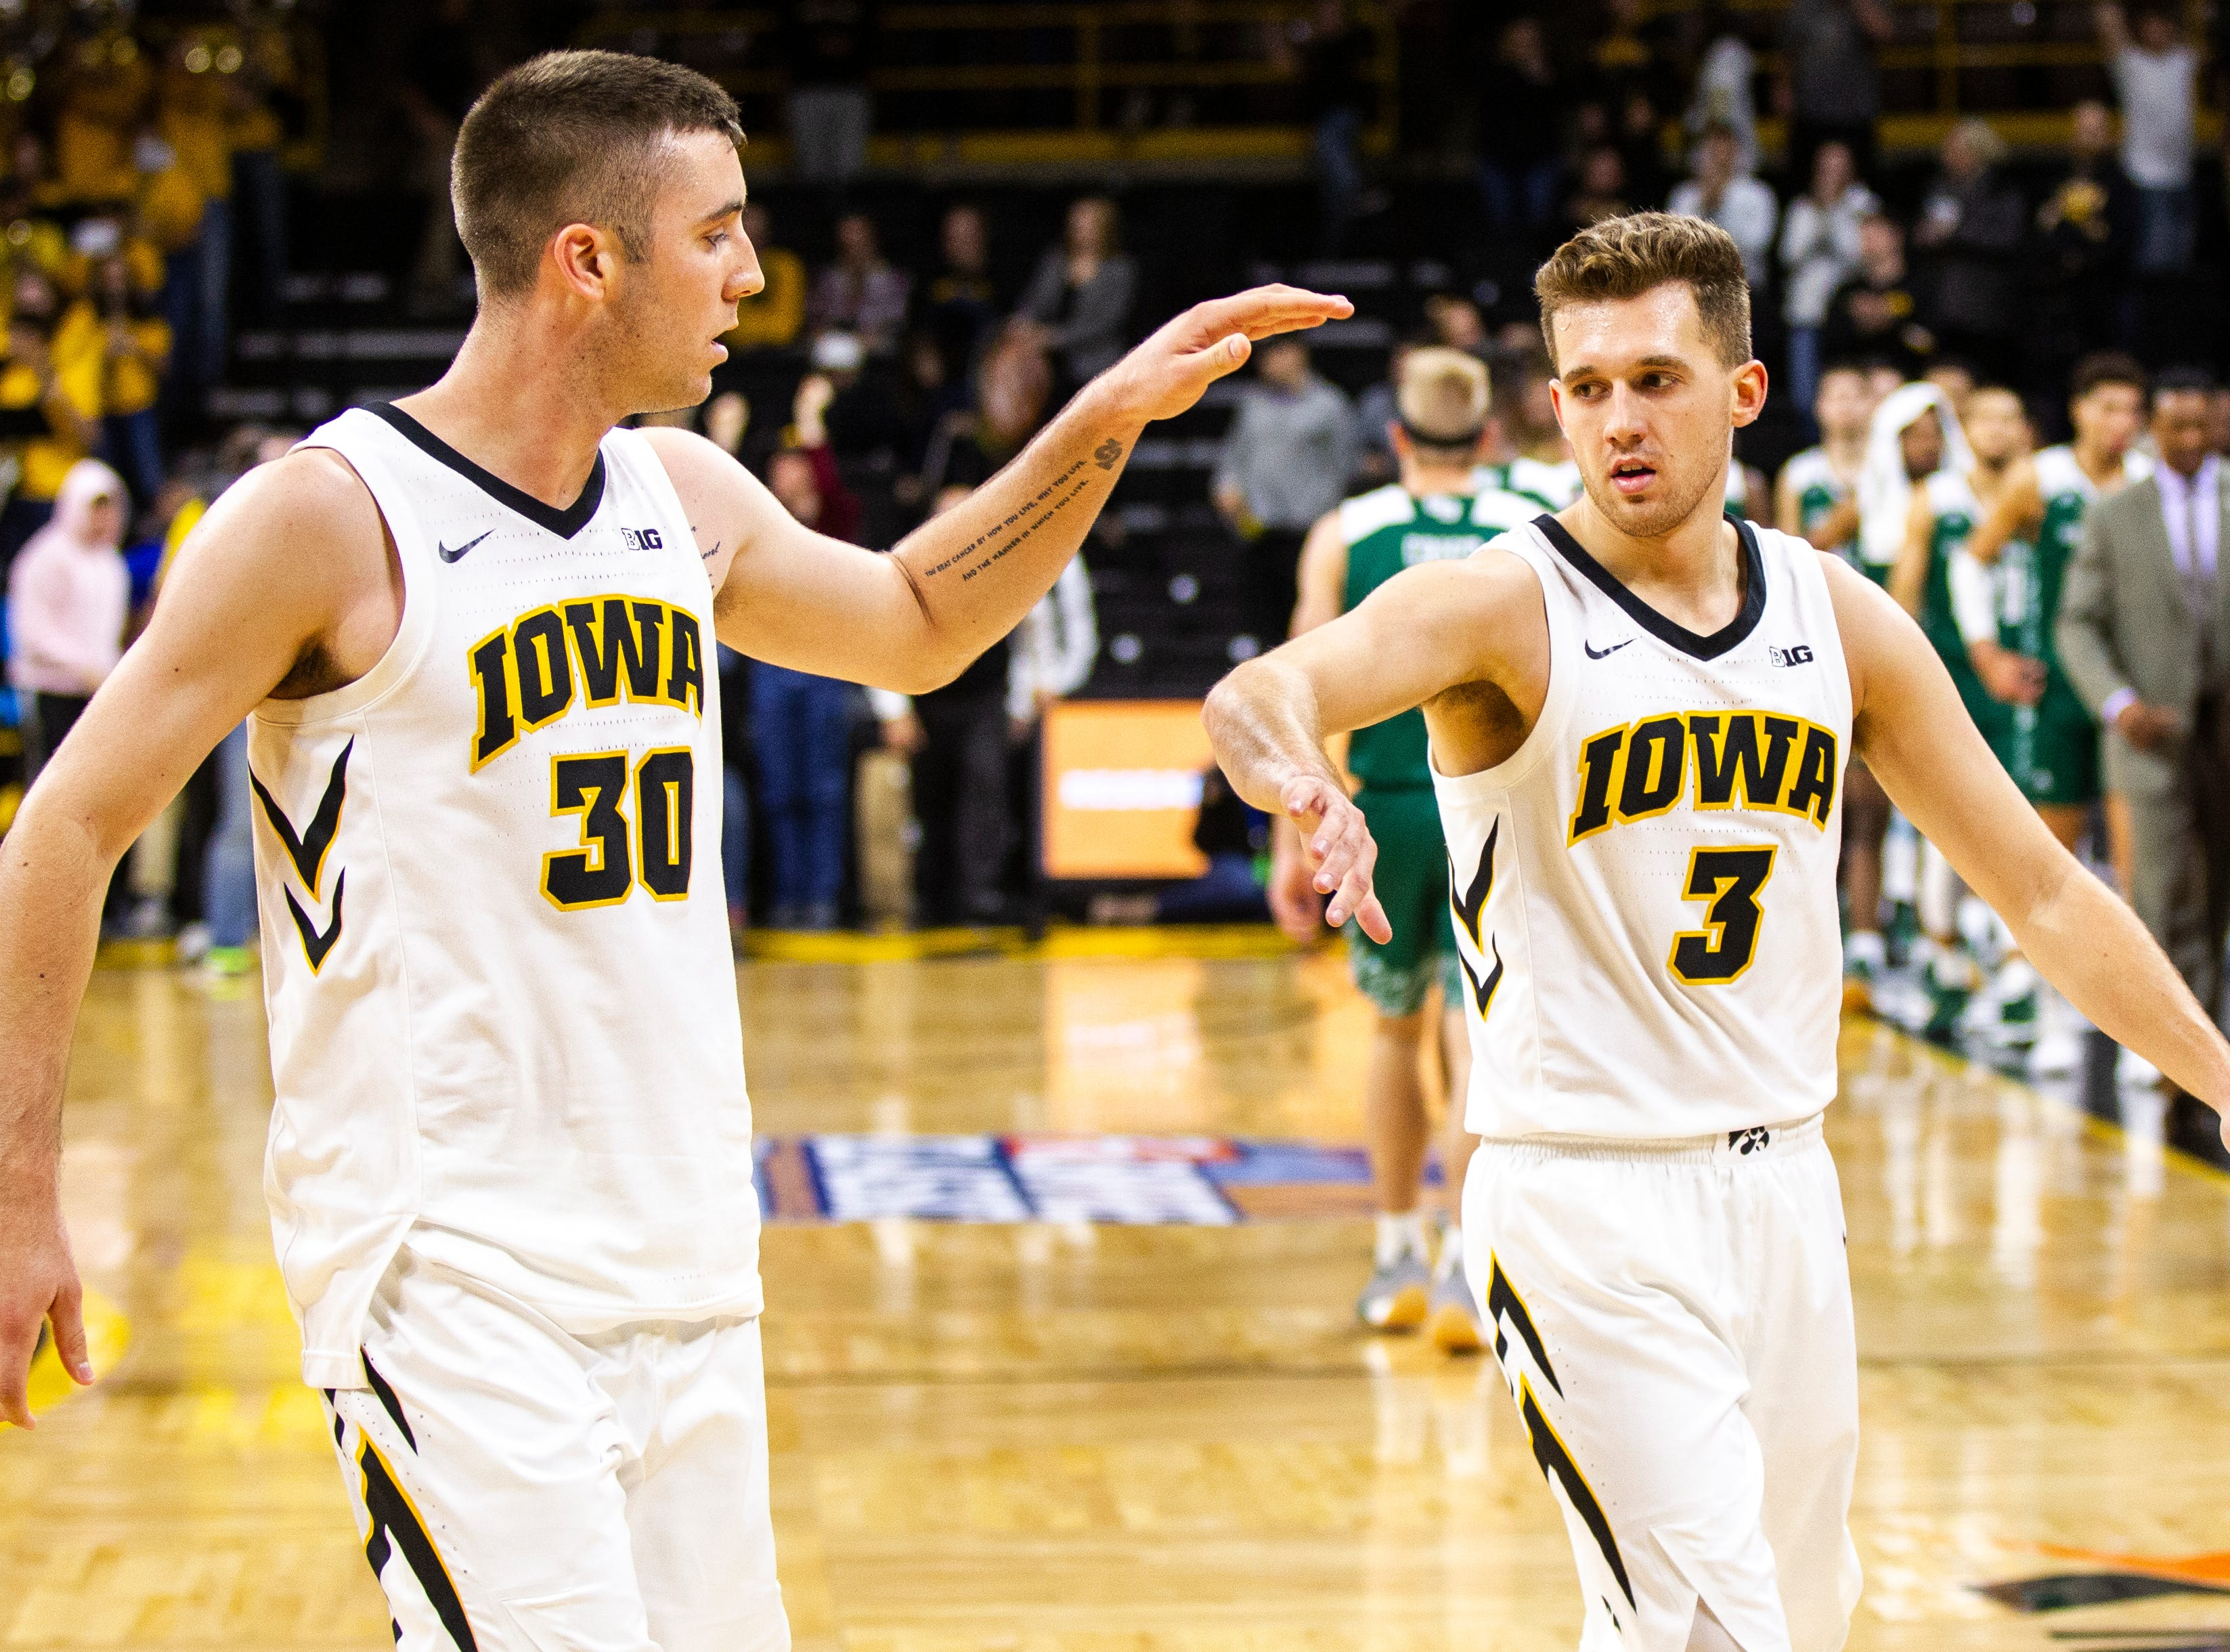 Iowa guard Connor McCaffery (30) high-fives Iowa guard Jordan Bohannon (3) after an NCAA men's basketball game in the 2K Empire Classic on Sunday, Nov. 11, 2018, at Carver-Hawkeye Arena in Iowa City.